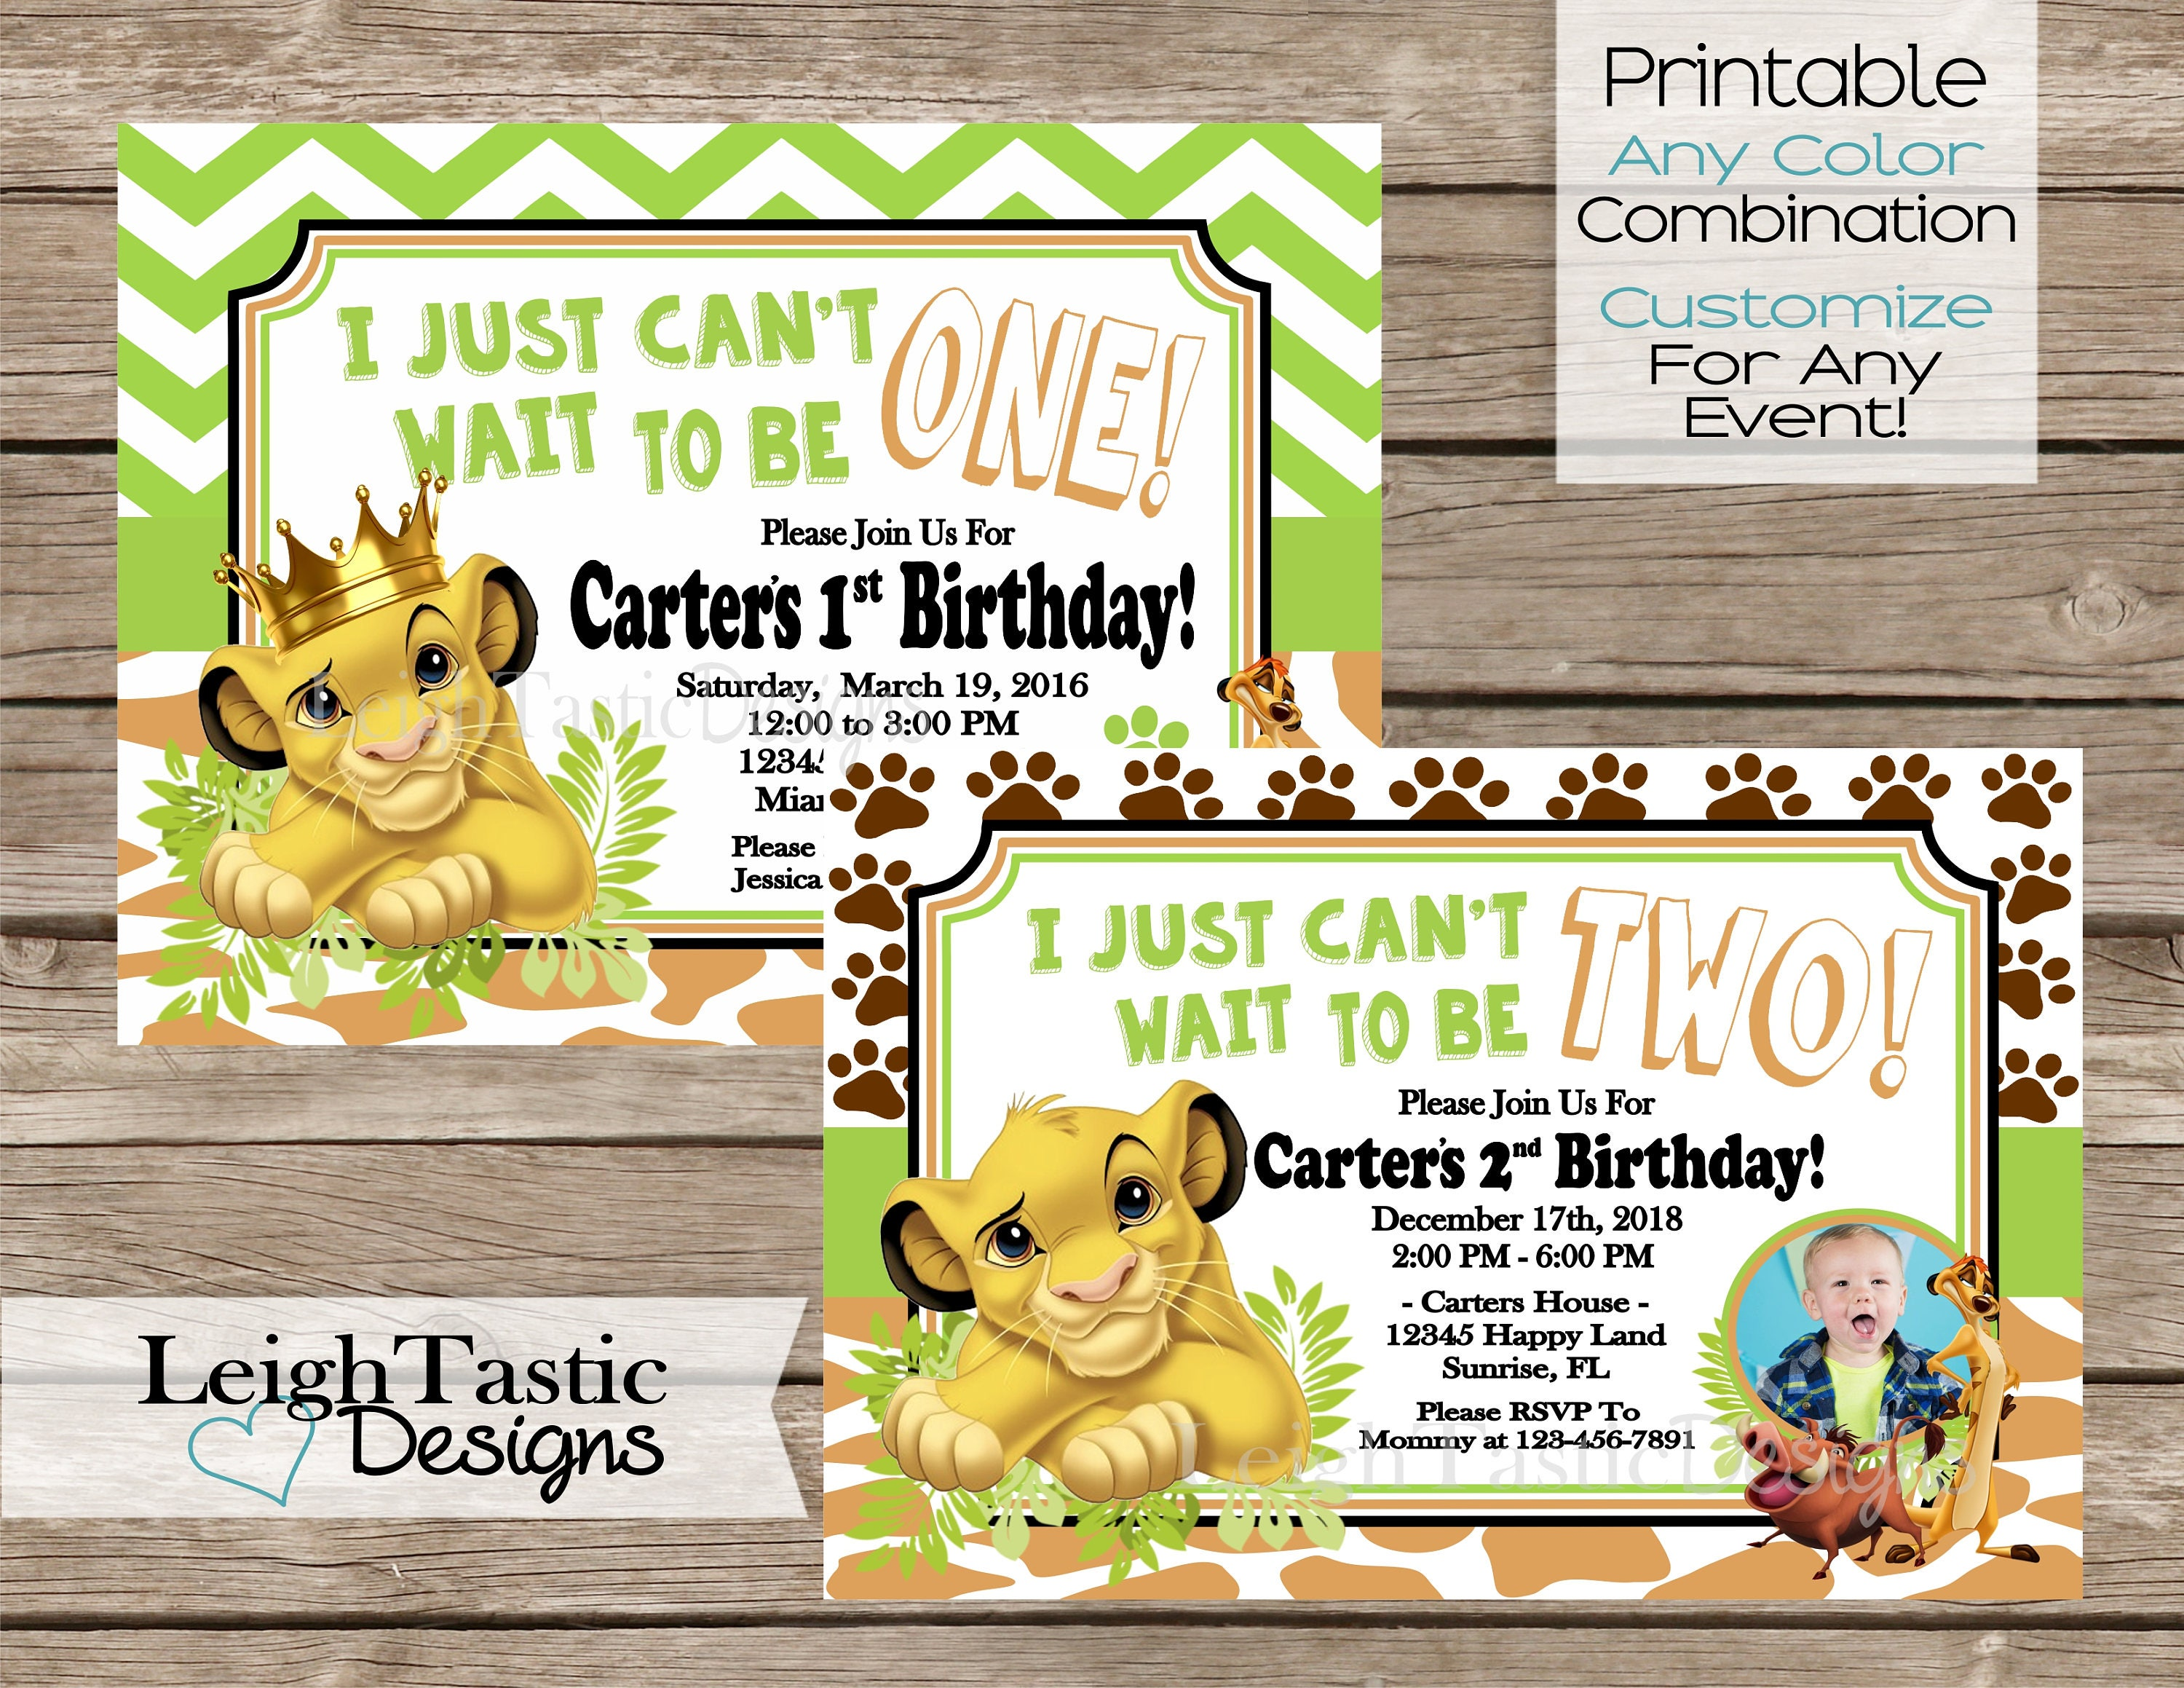 SALE PRINTABLE Invitation Simba Birthday Lion King